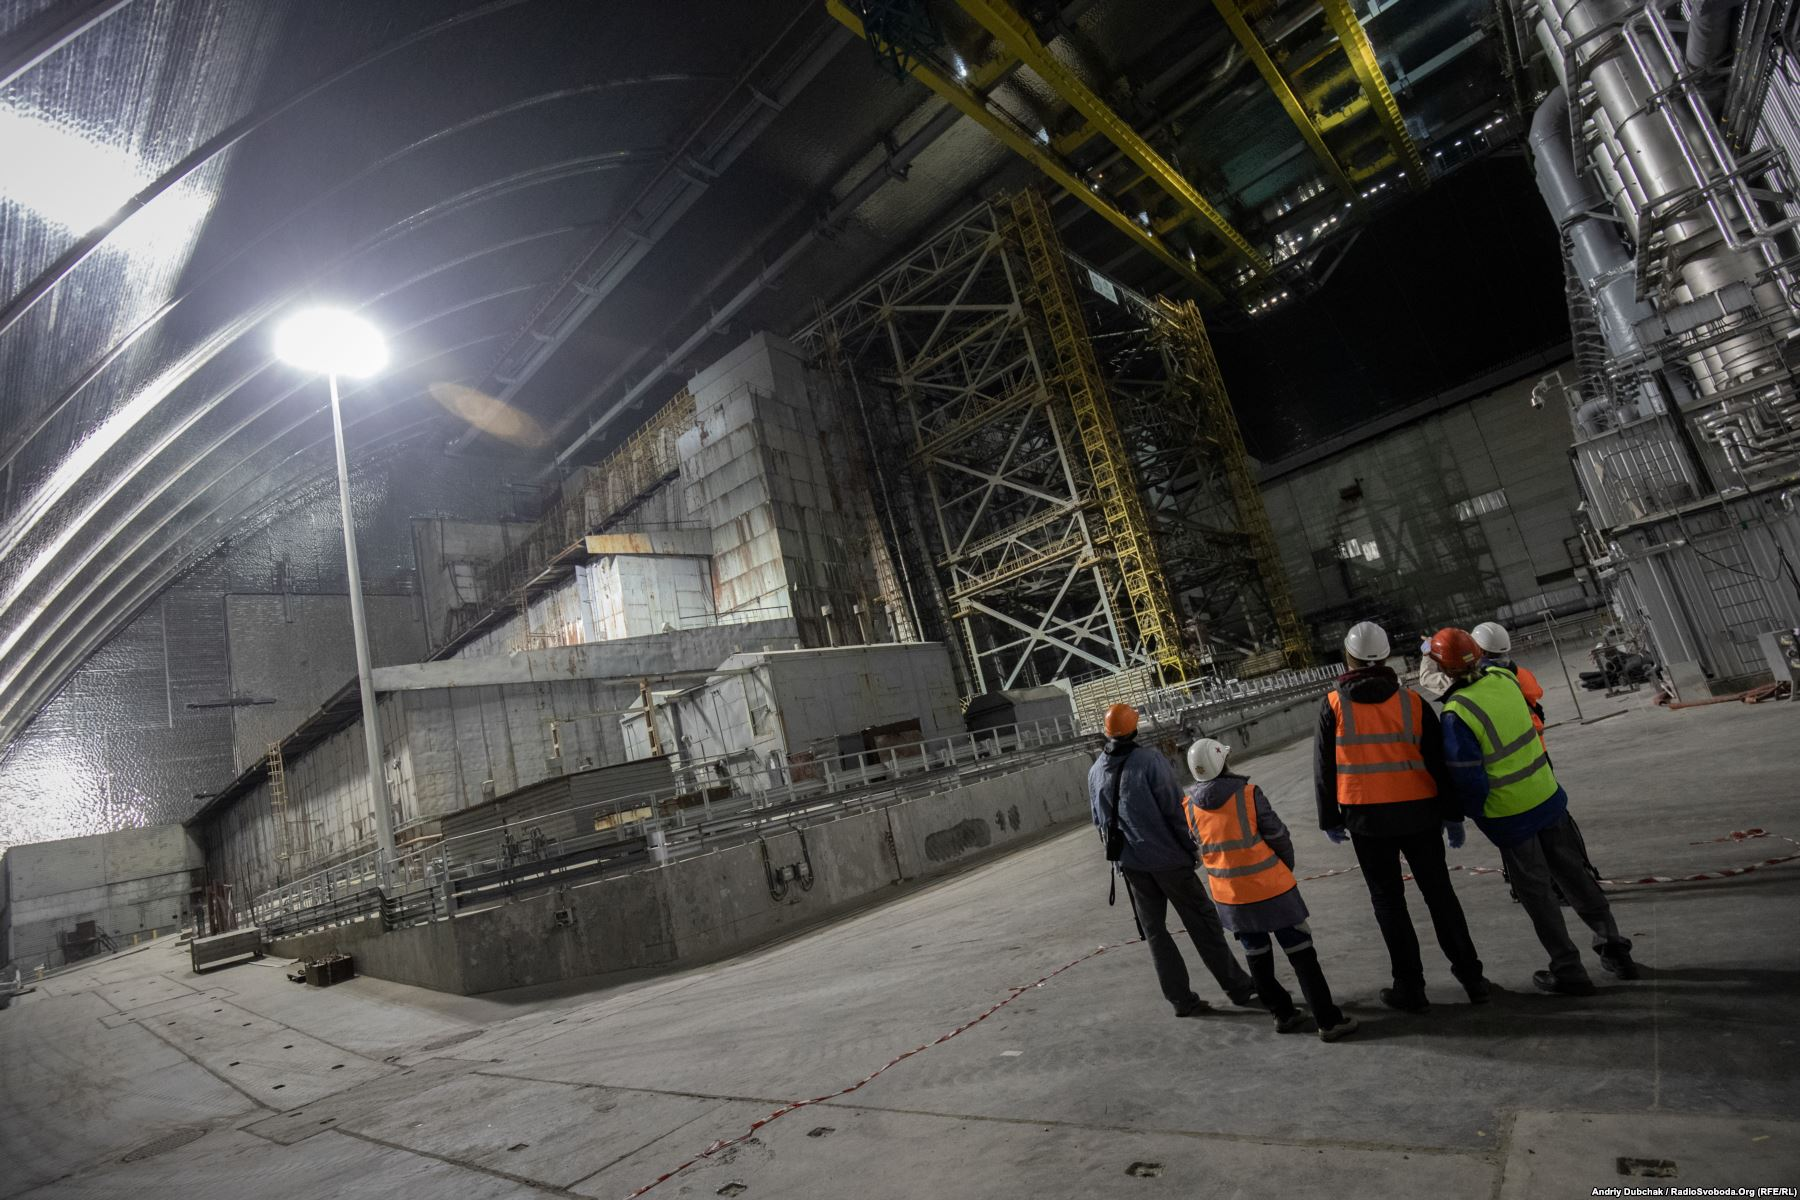 The old concrete sarcophagus under the New Safe Confinement (NSC). There remains an estimated 200 tons of radioactive fuel inside the crippled reactor. Photo by: Andriy Dubchak